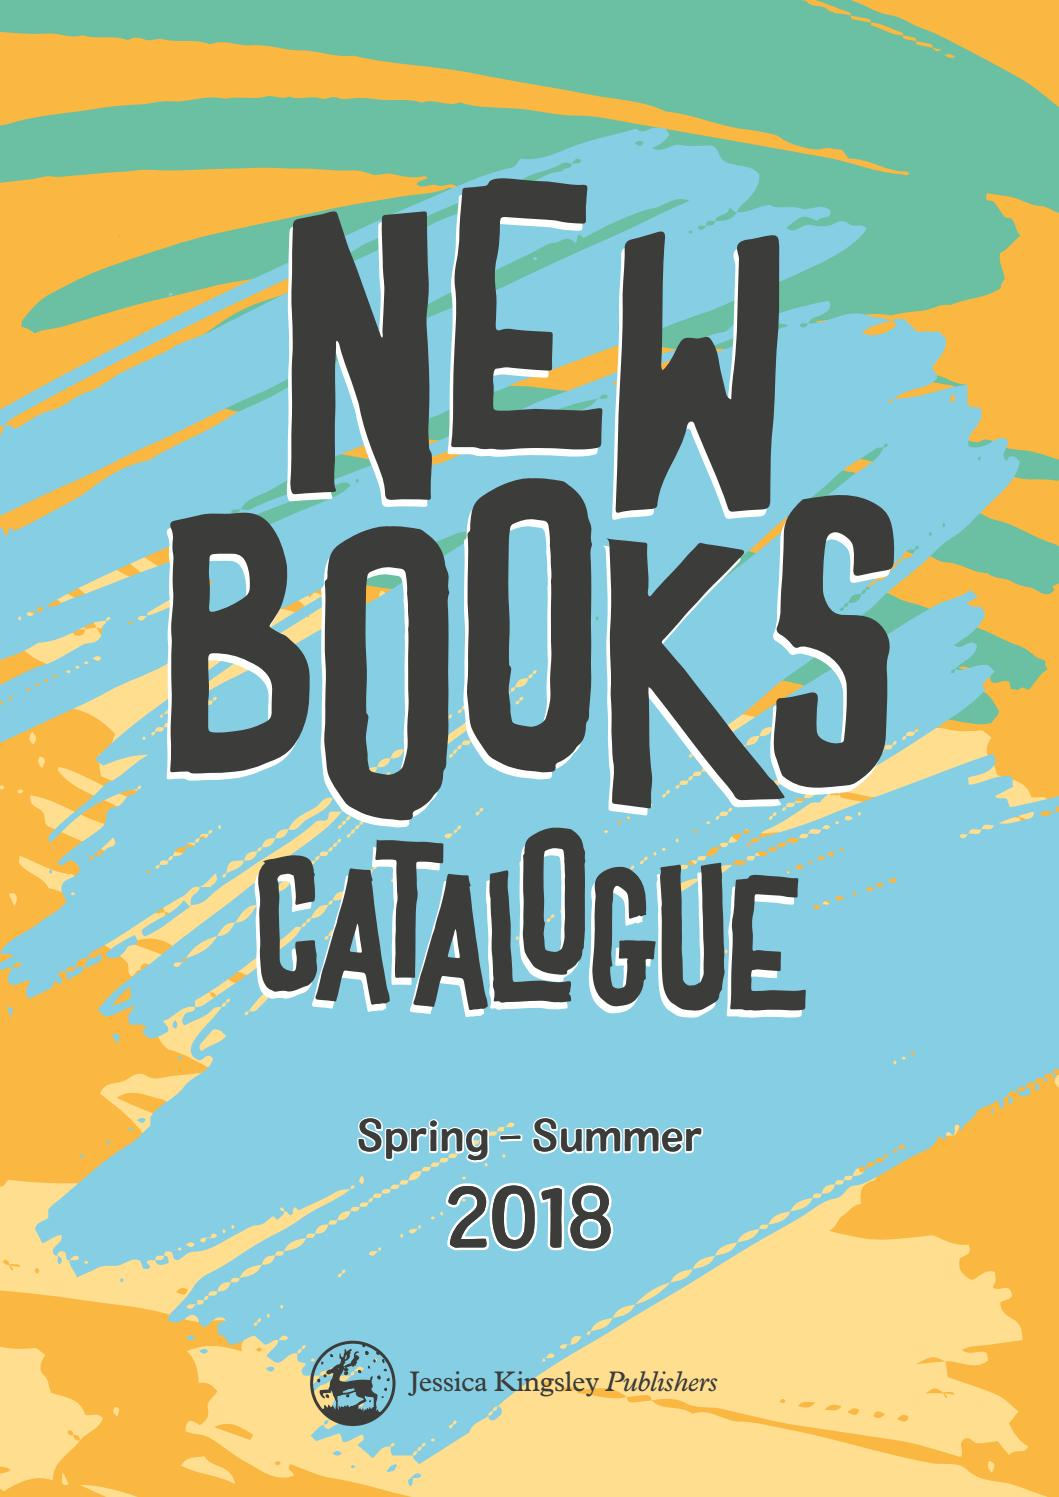 Jessica Kingsley Publishers - New Books Catalogue Spring